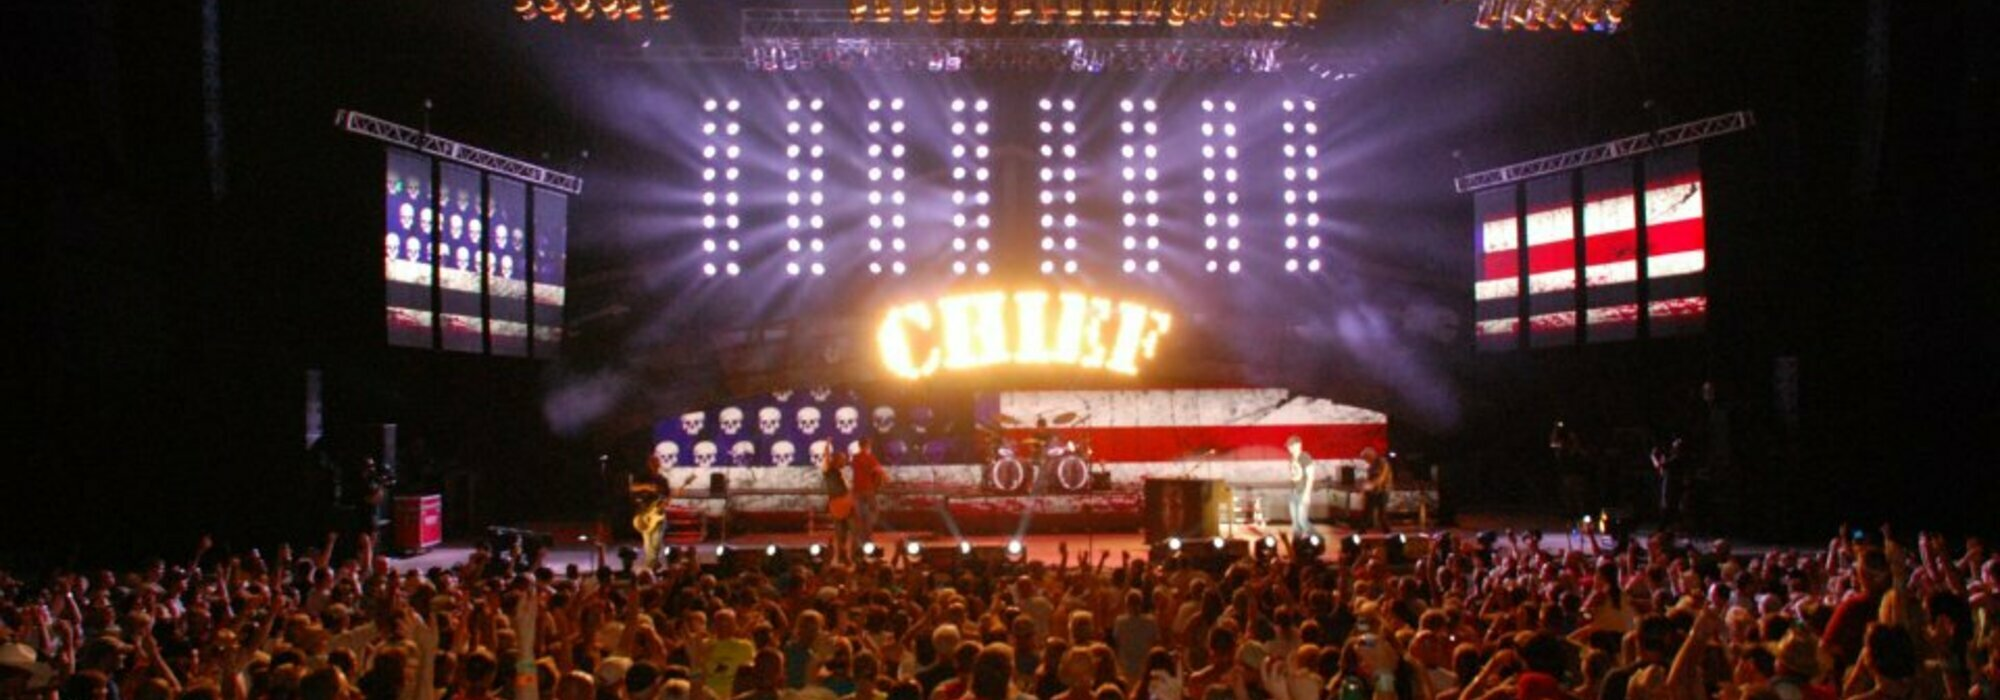 A Country Concert live event